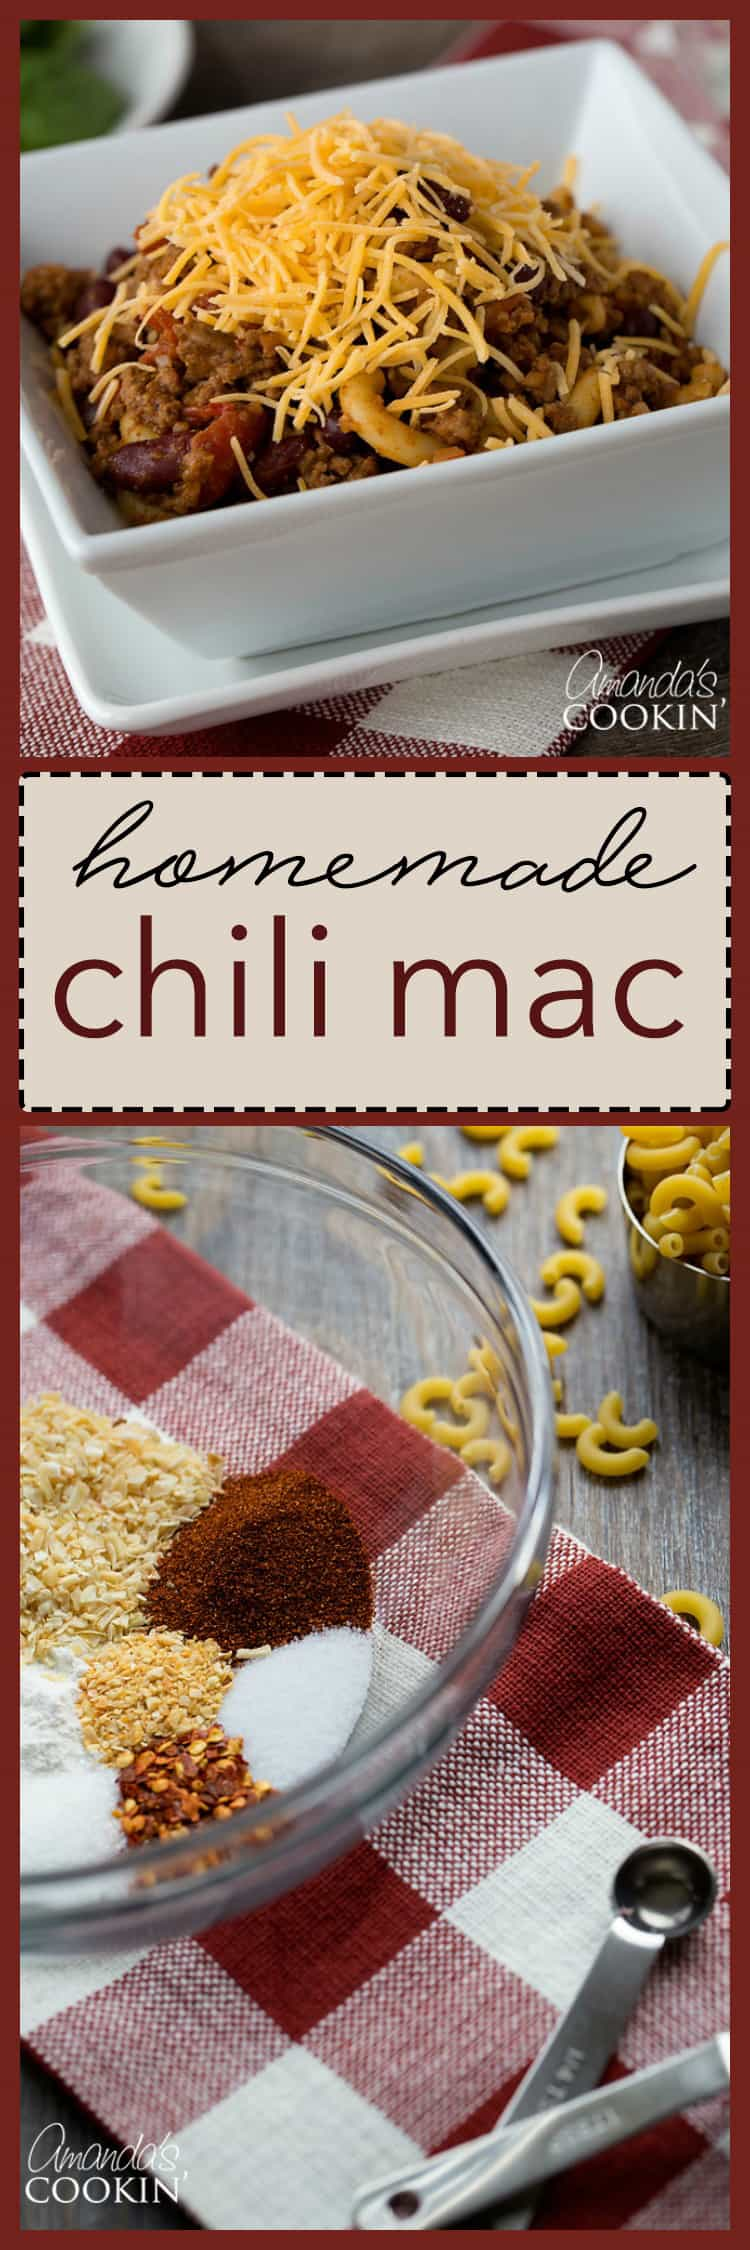 This Chili Mac is a classic comfort food. Marry some chili with quick cook mac, and you have a super fast meal for one of those crazy busy weekday nights!